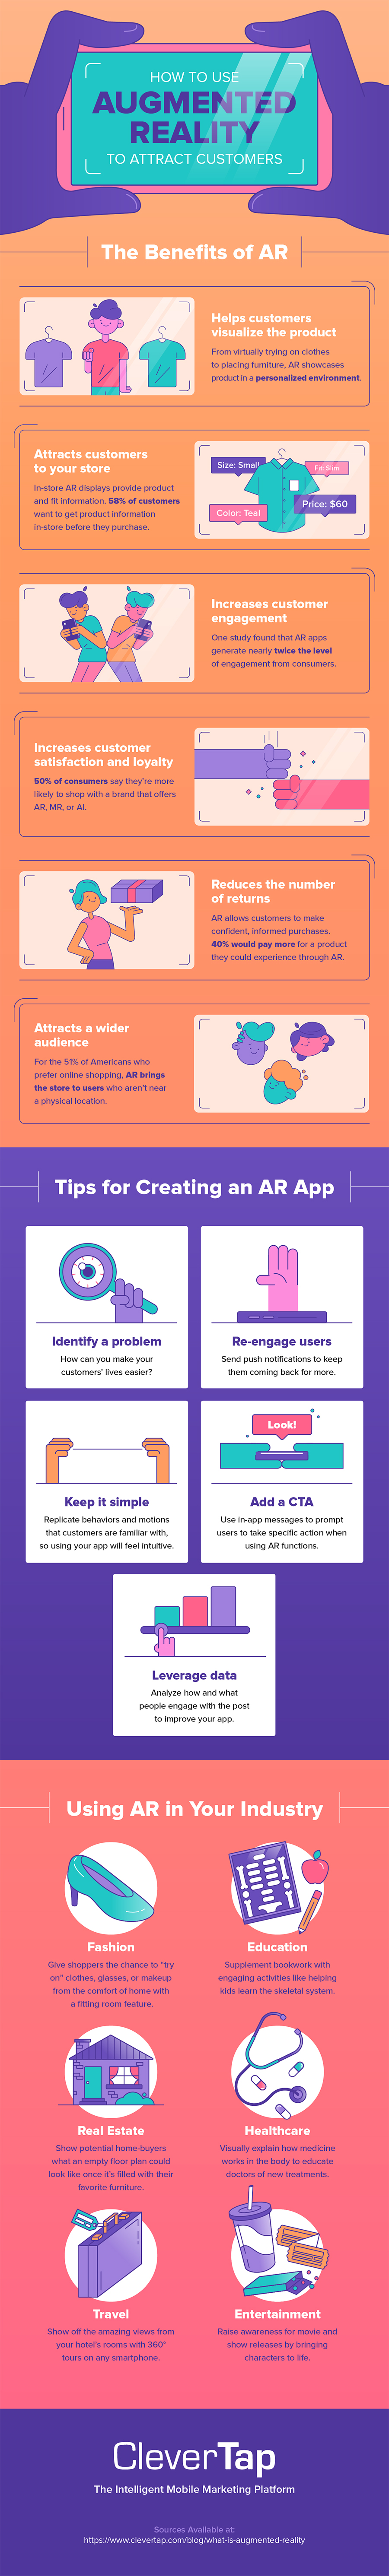 Infographic outlines the benefits of AR for digital marketing